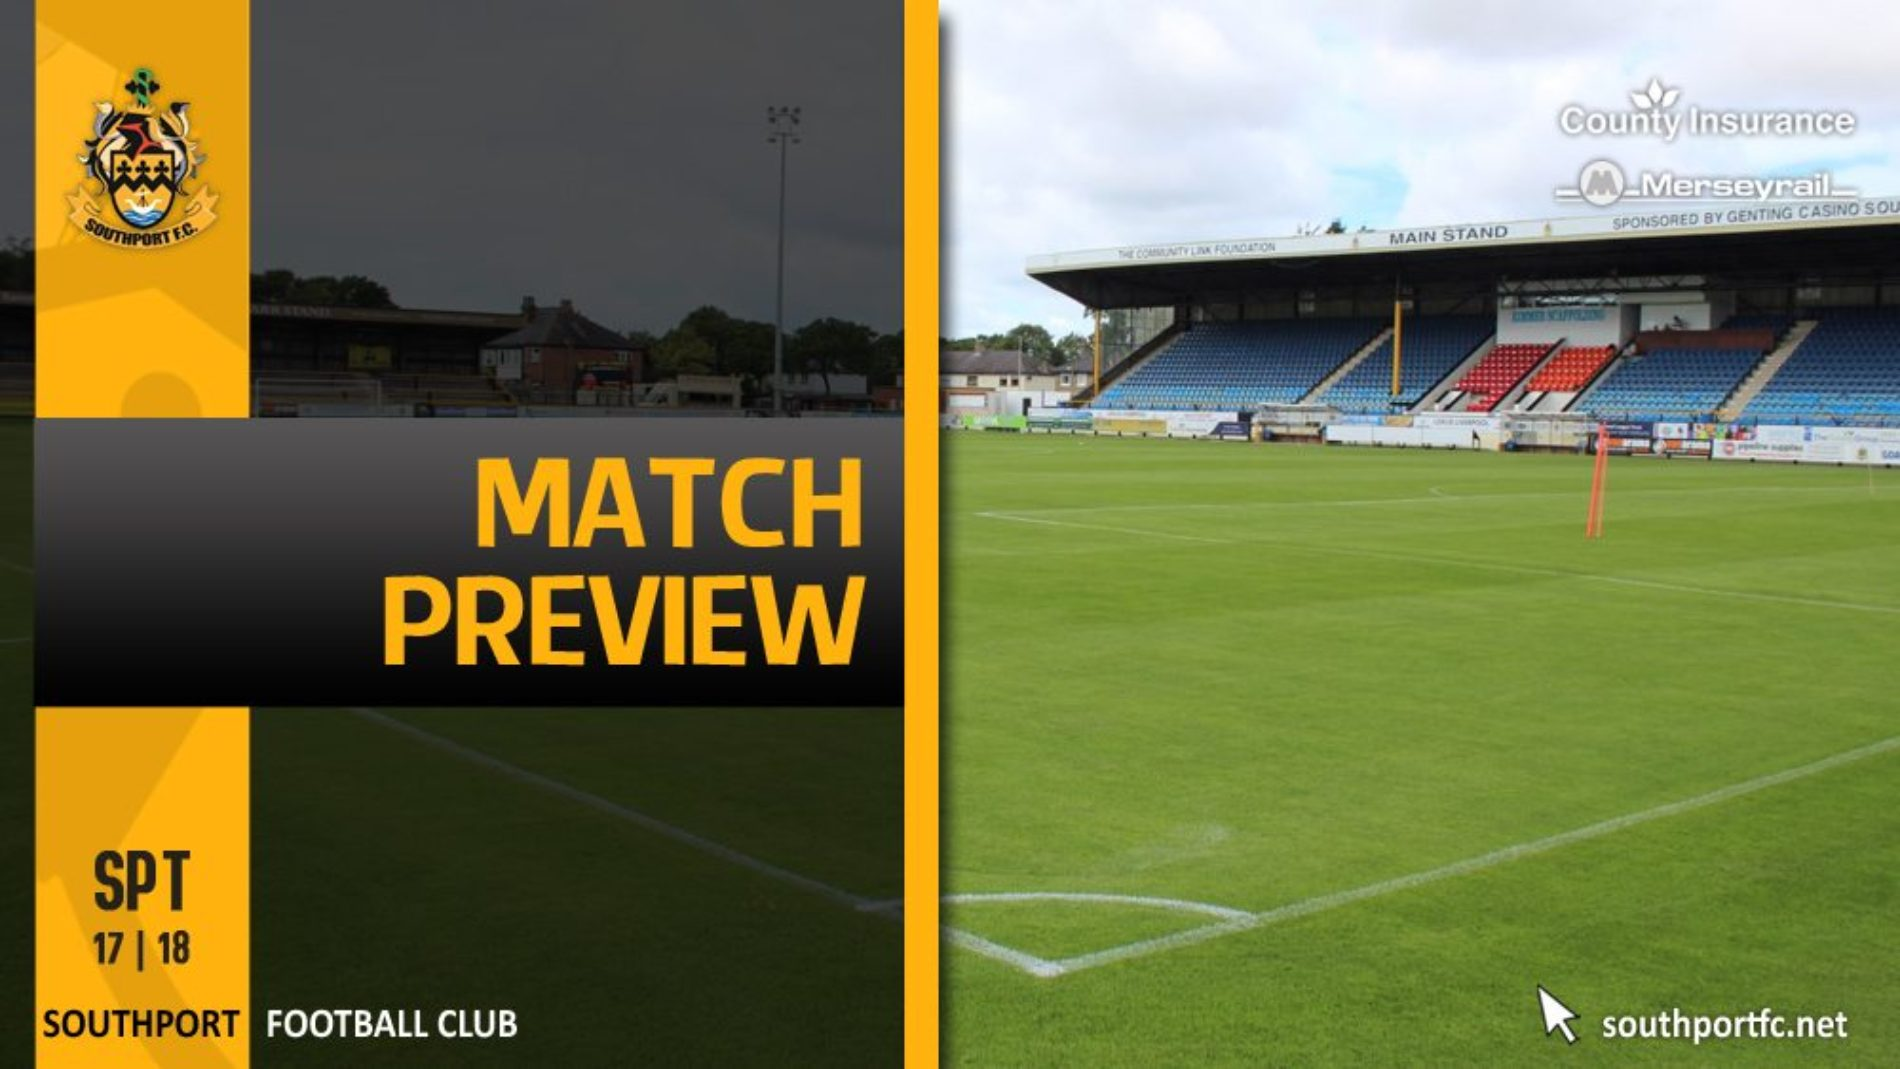 MATCH PREVIEW | Southport v Telford United